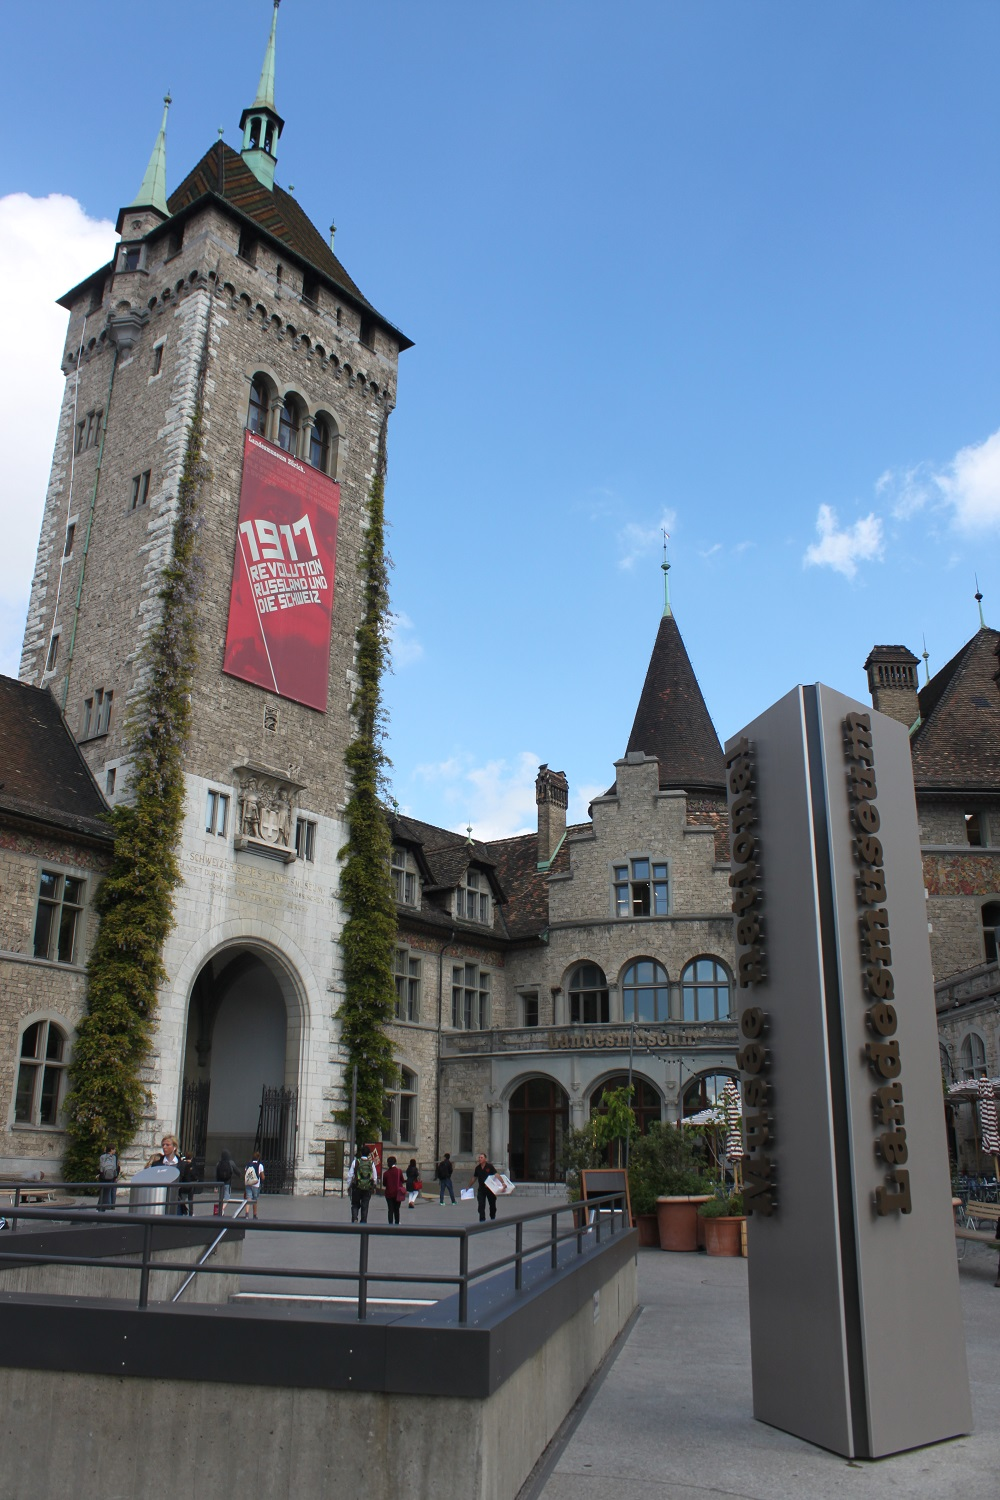 The Swiss National Museum